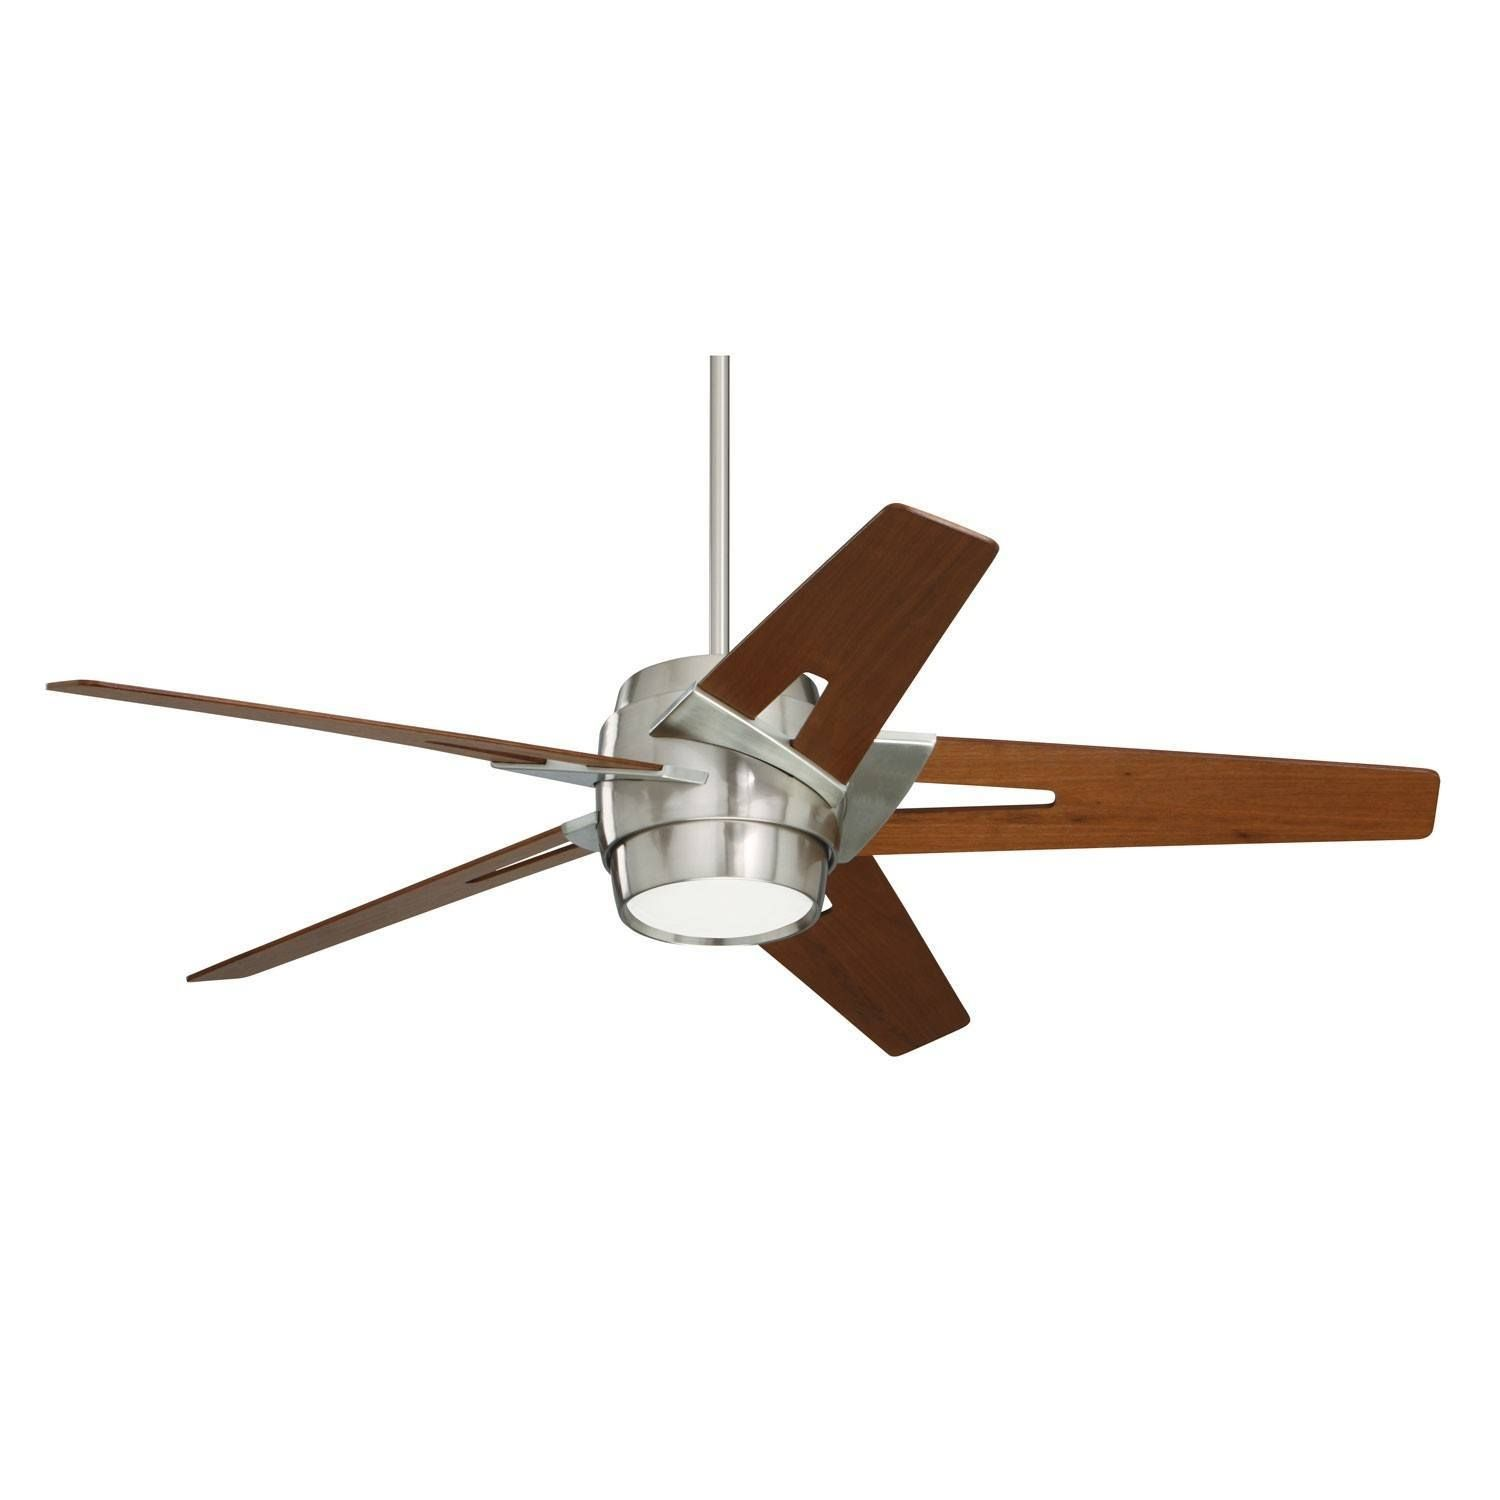 Best rated ceiling fans httpladysrofo pinterest ceiling best rated ceiling fans emerson electricmodern aloadofball Choice Image